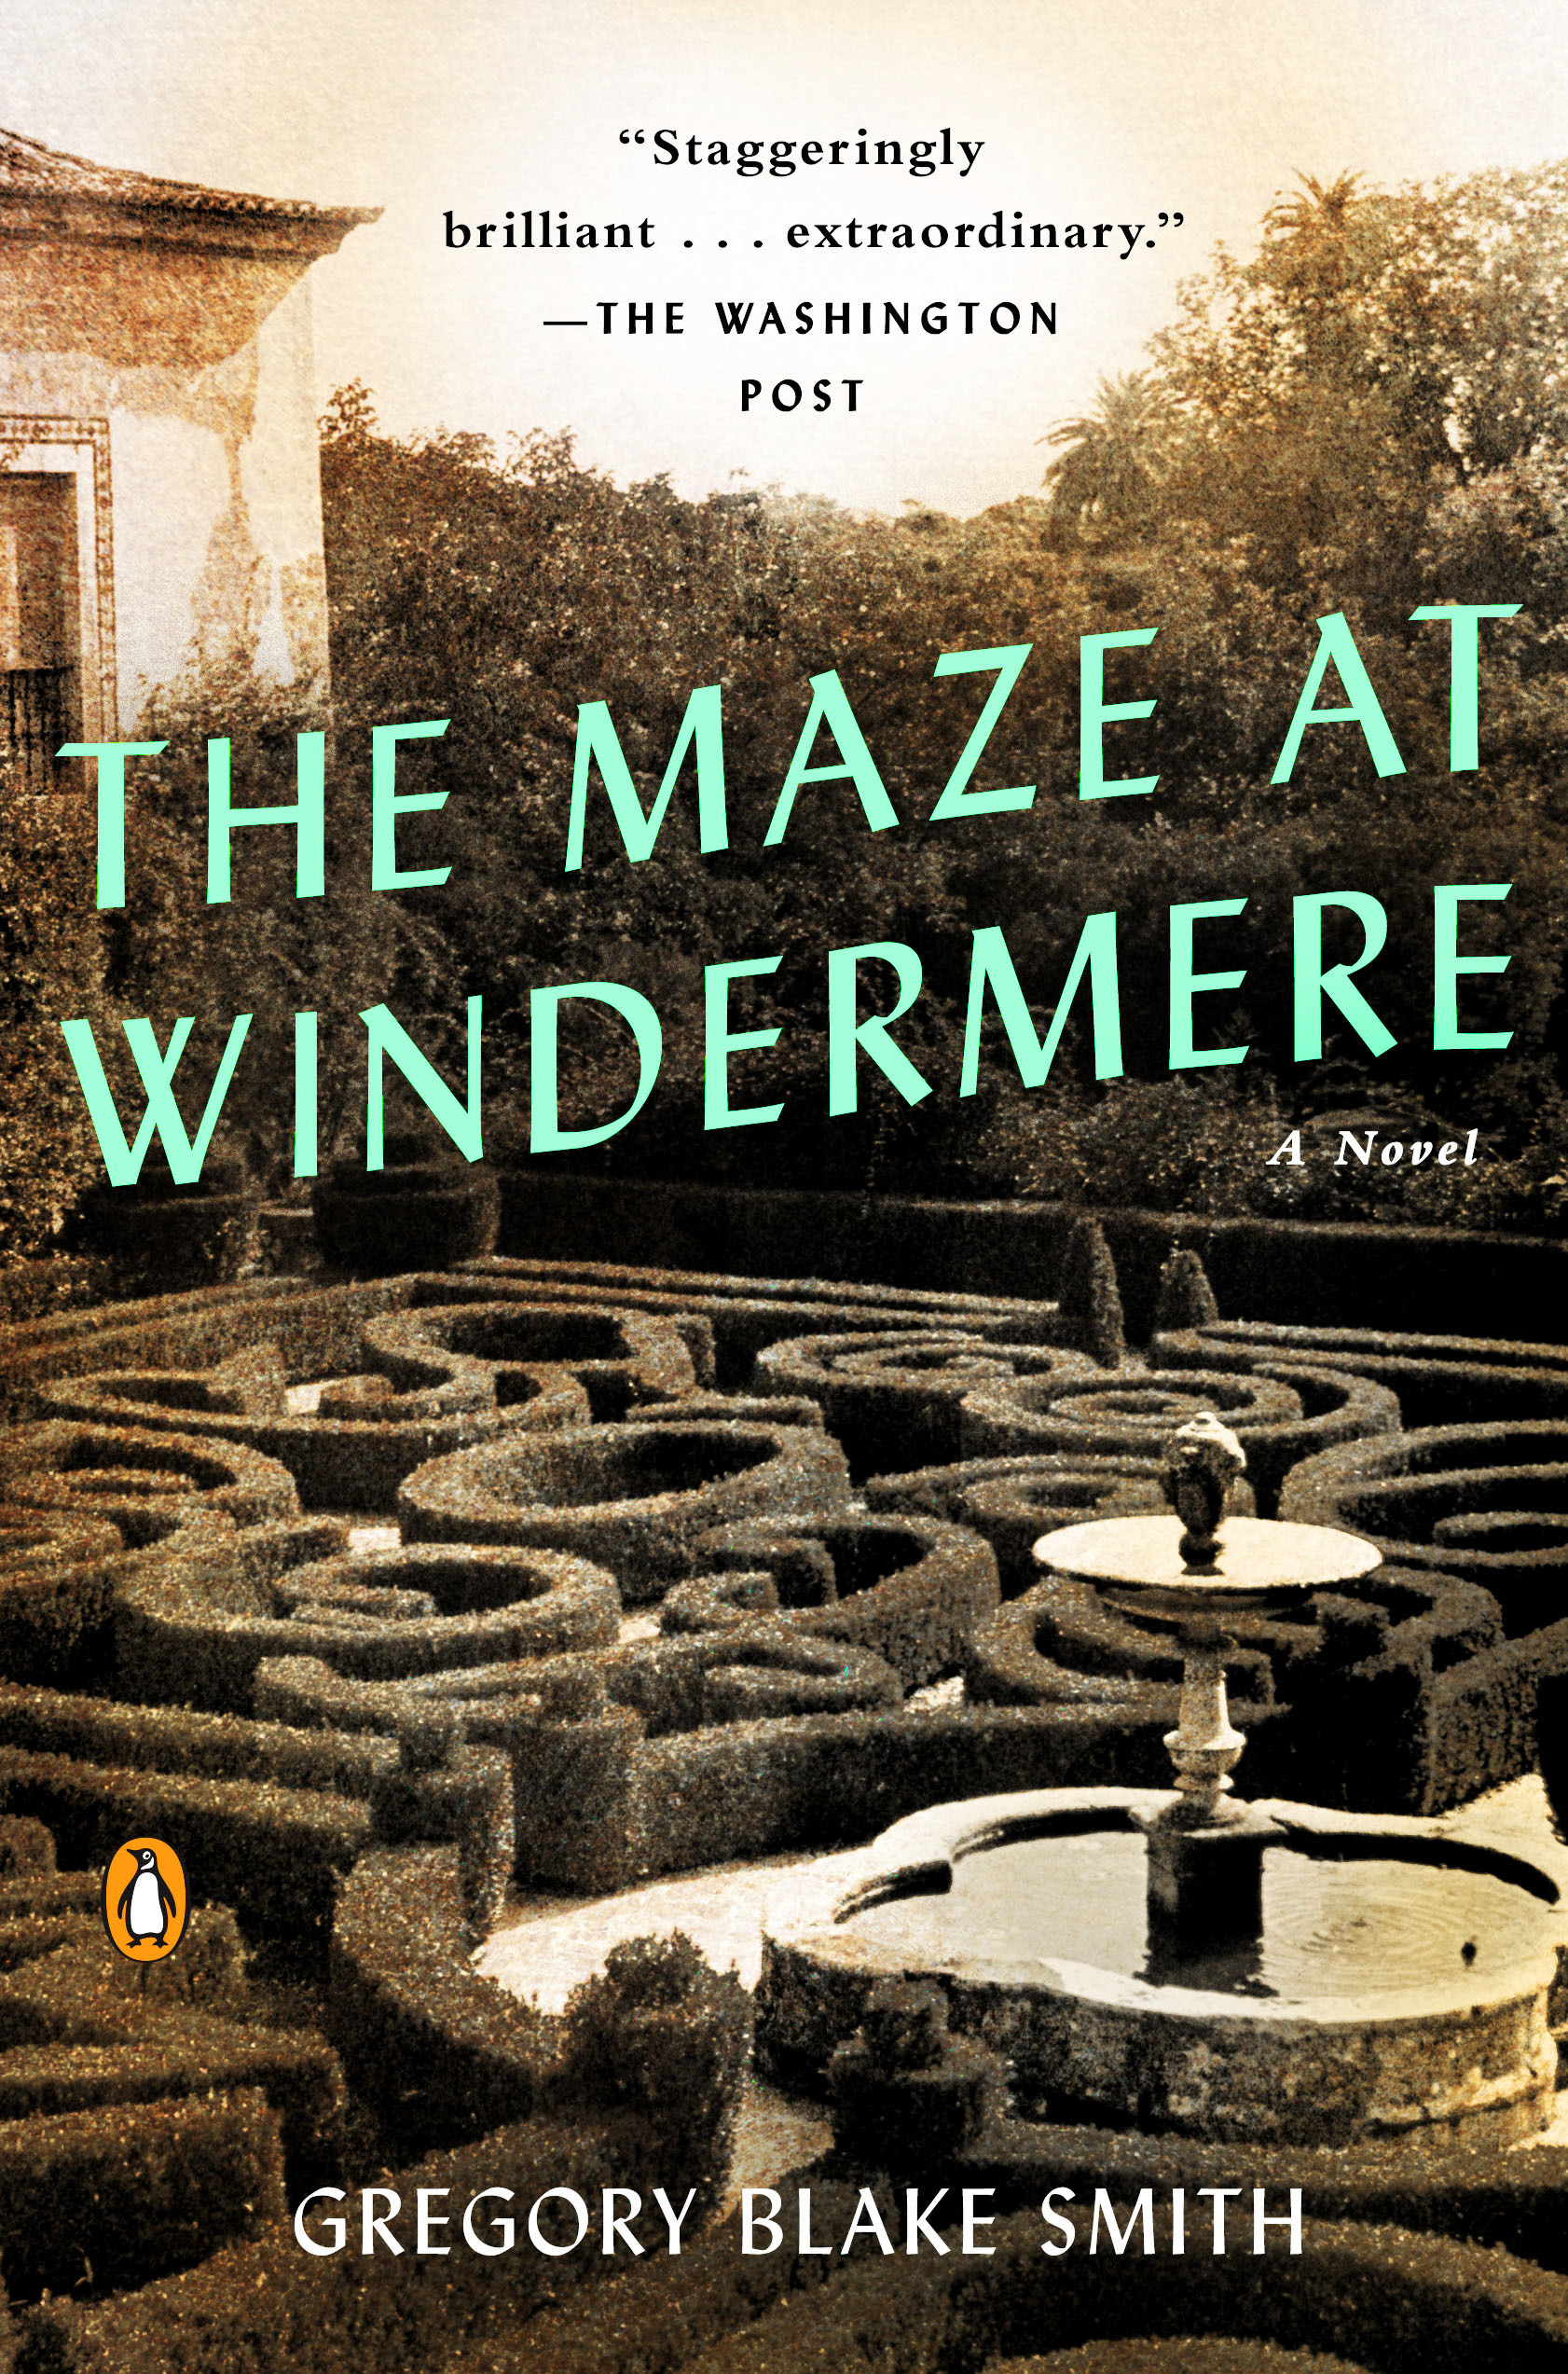 The Maze at Windermere  by Gregory Blake Smith  (Penguin Random House, Viking)   READ MORE